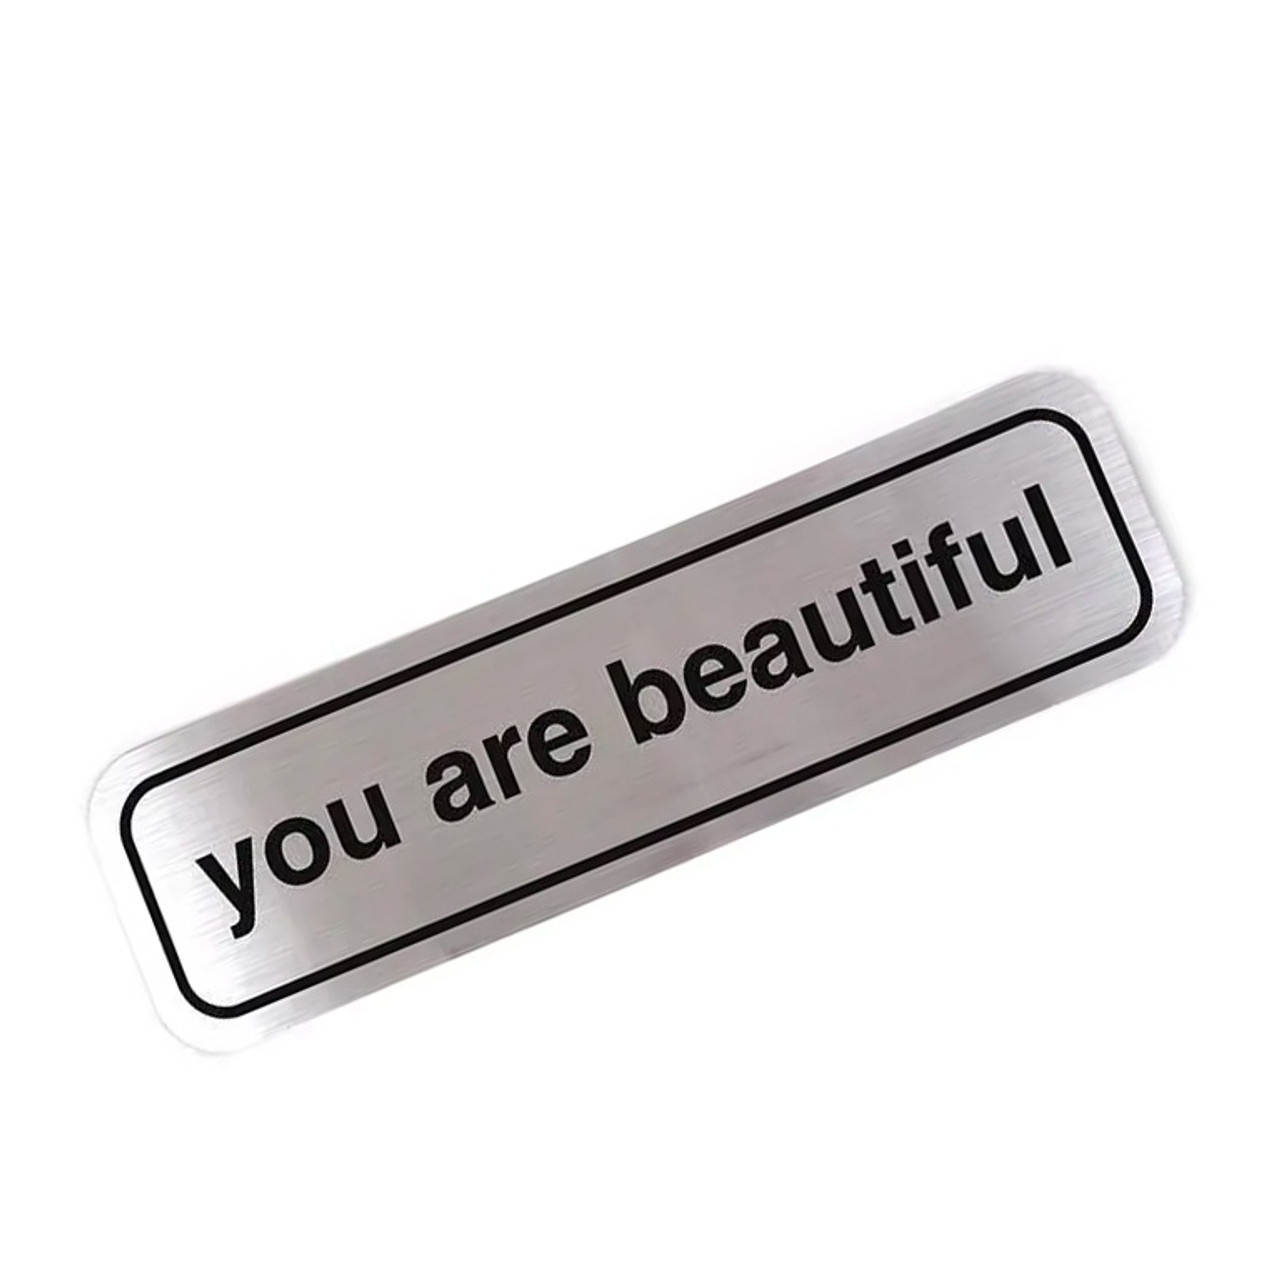 You are beautiful bumper sticker dream in plastic